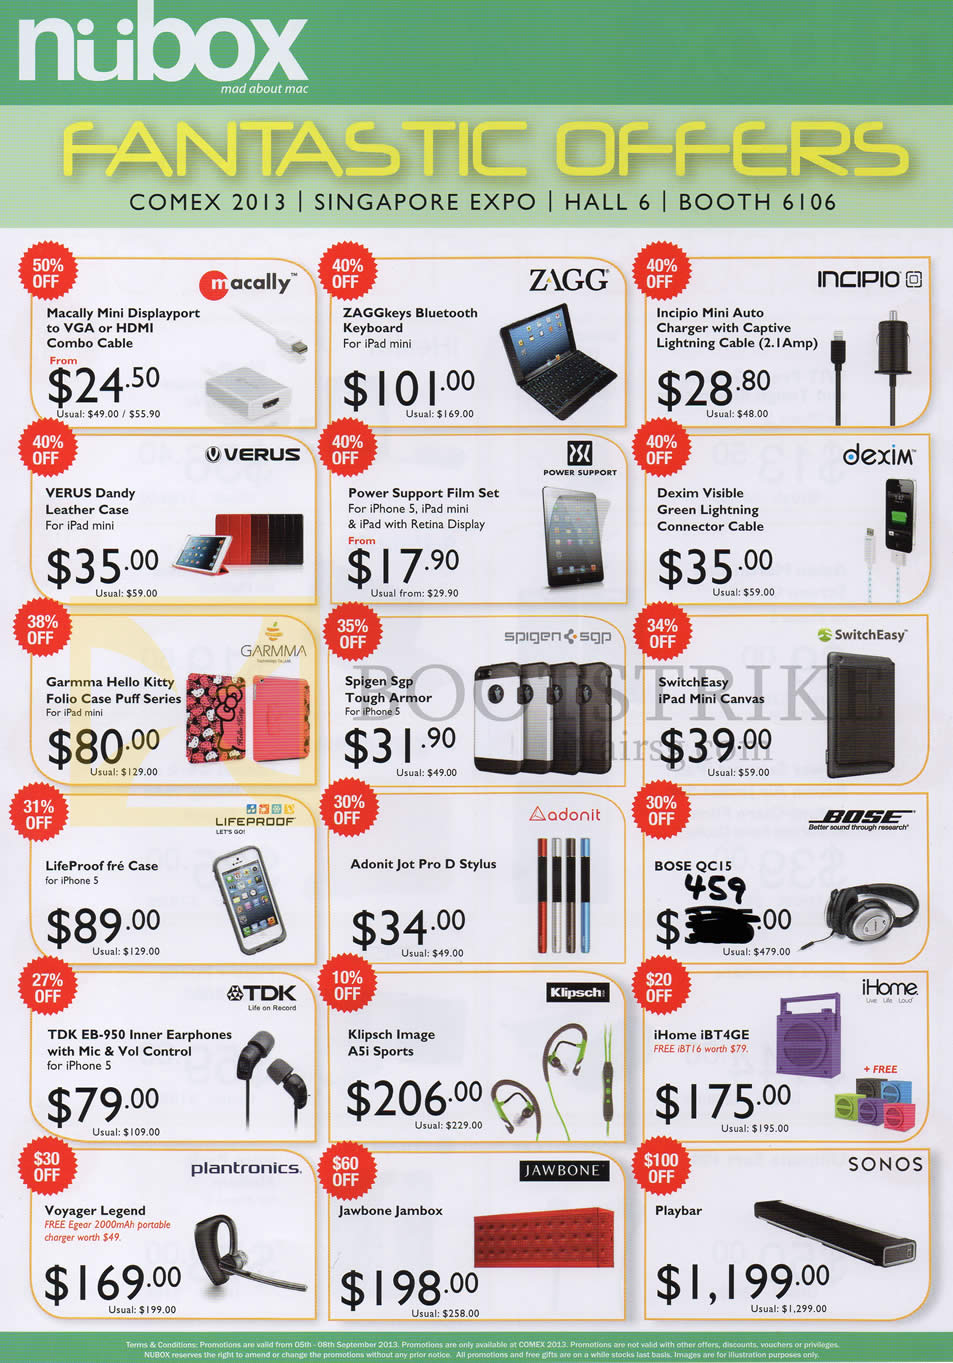 COMEX 2013 price list image brochure of Nubox Accessories Versus Case, Dexim, Bose QC15 Headphones, TDK EB-950 Earphones, Klipsch, Voyager, Jawbone